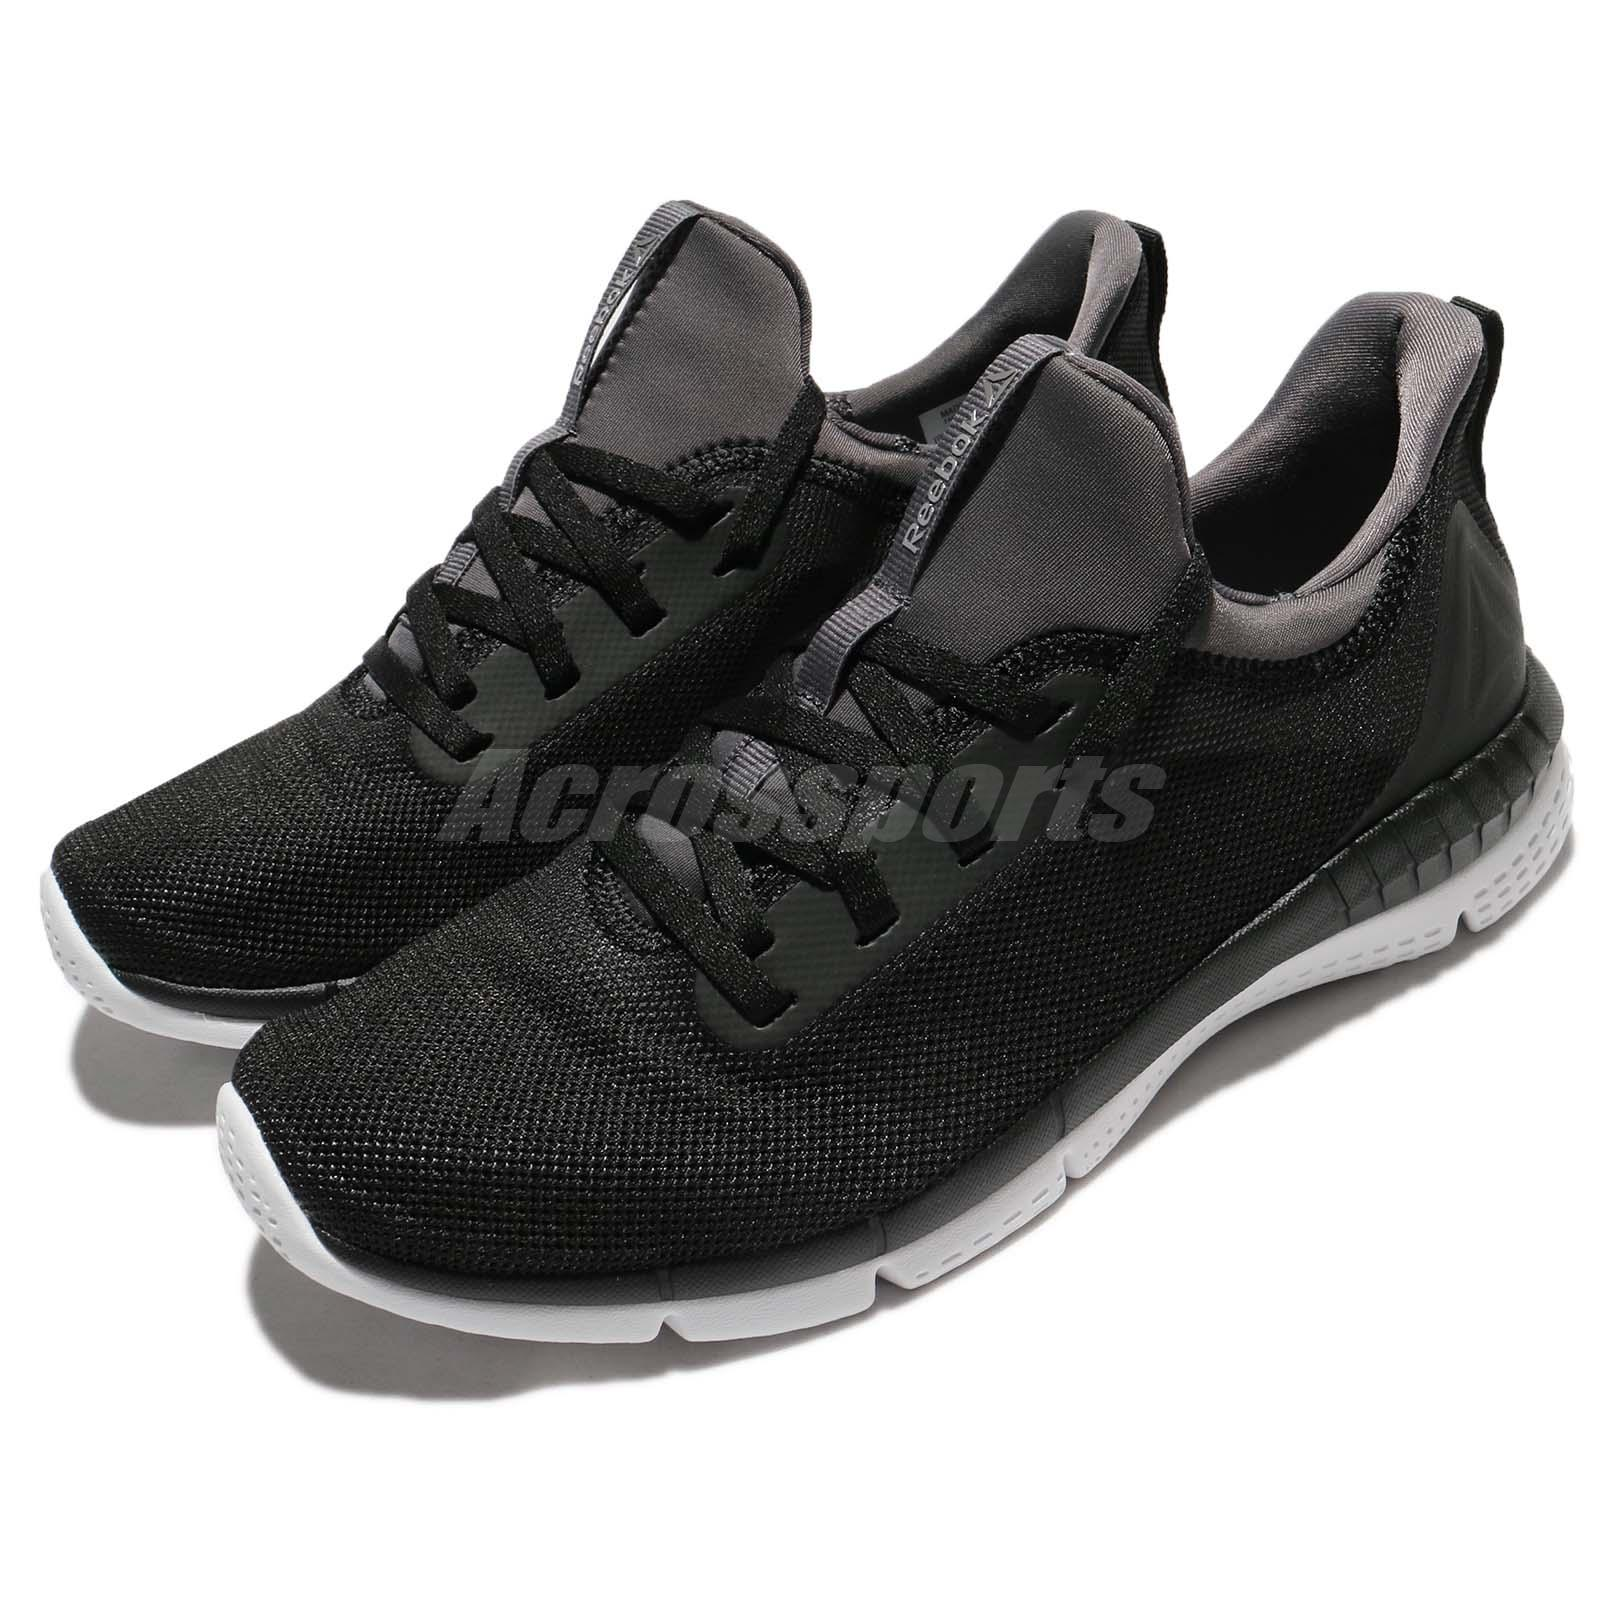 6ca58f6b8bce Details about Reebok Print Her 2.0 Black Grey White Women Running Shoes  Sneakers BS8539